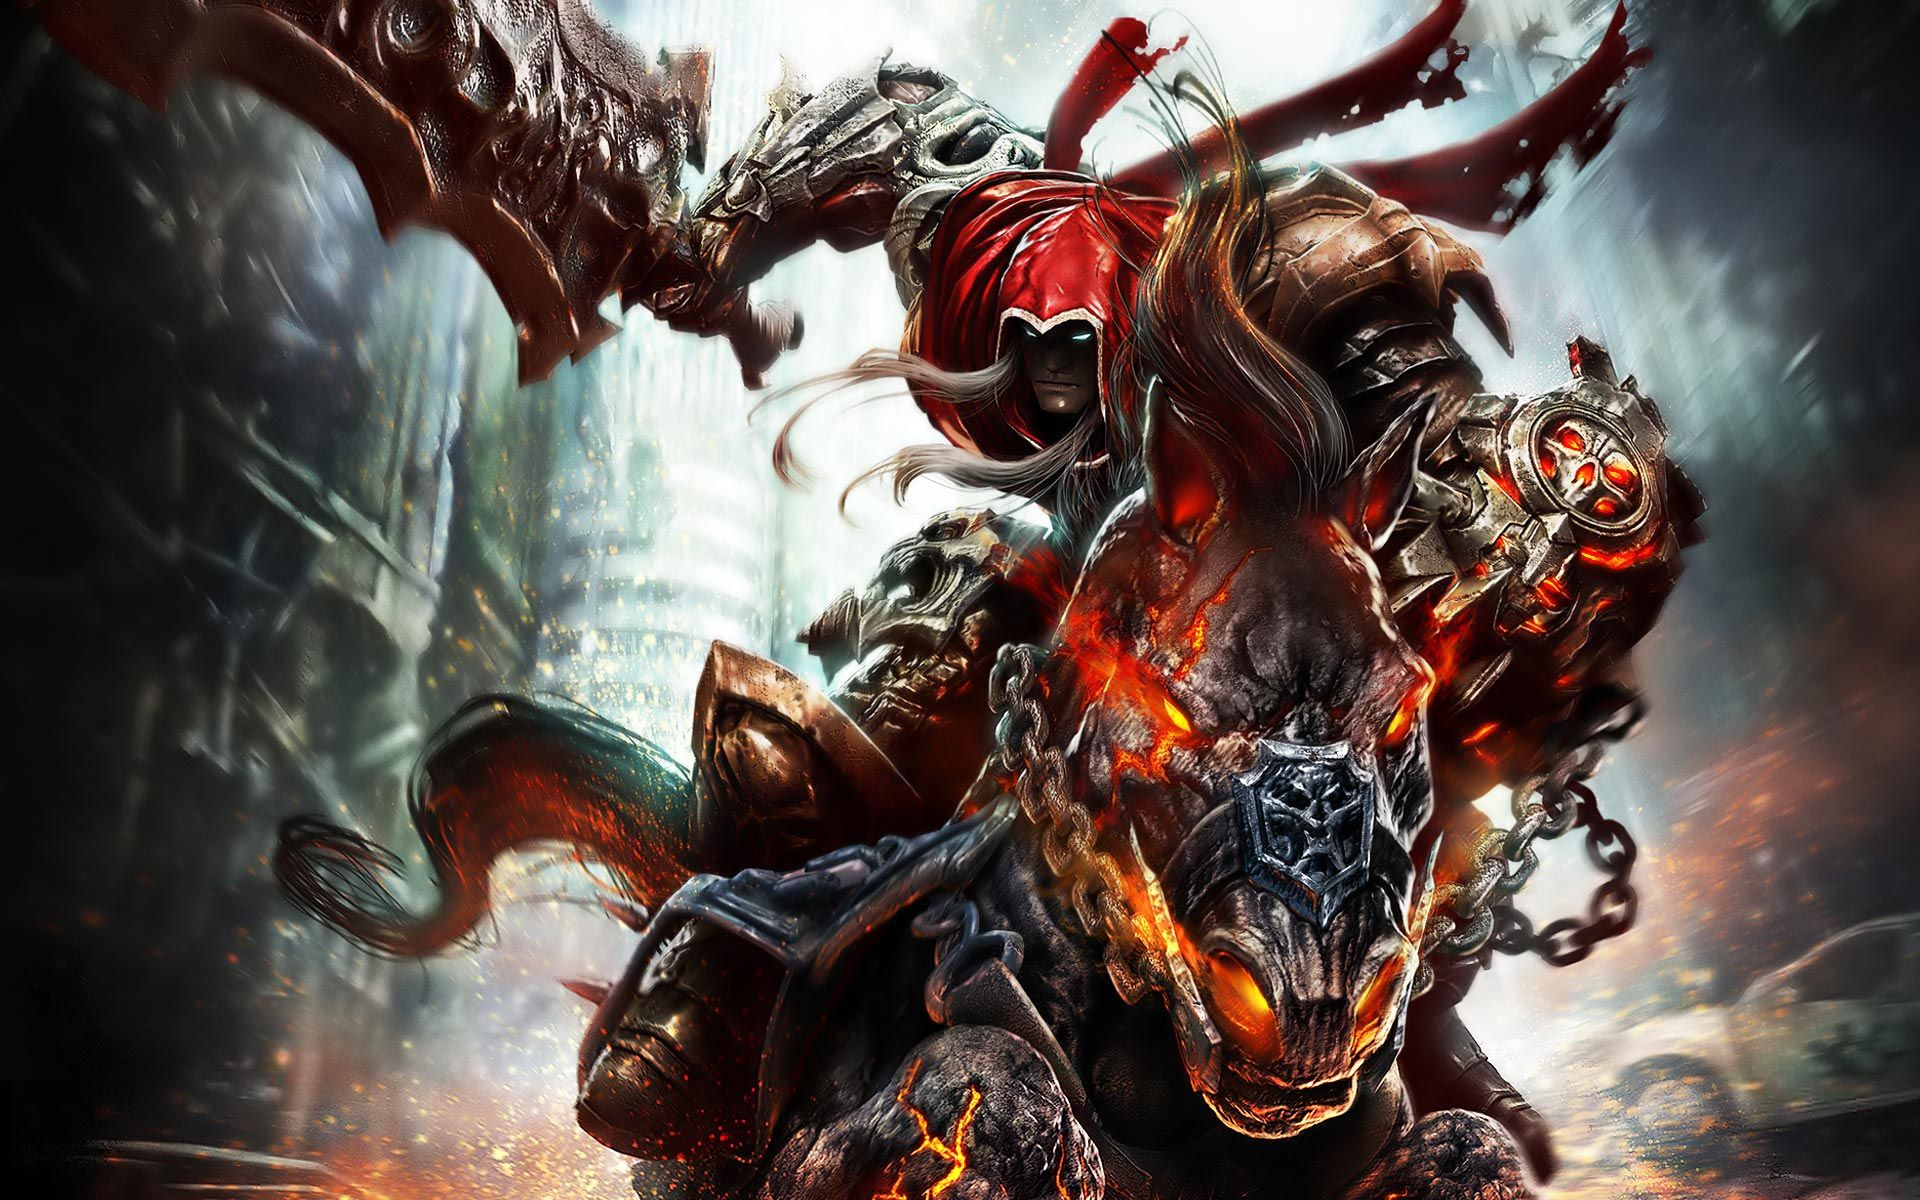 desktop backgrounds backgrounds games darksiders video game wallpapers 1920x1200